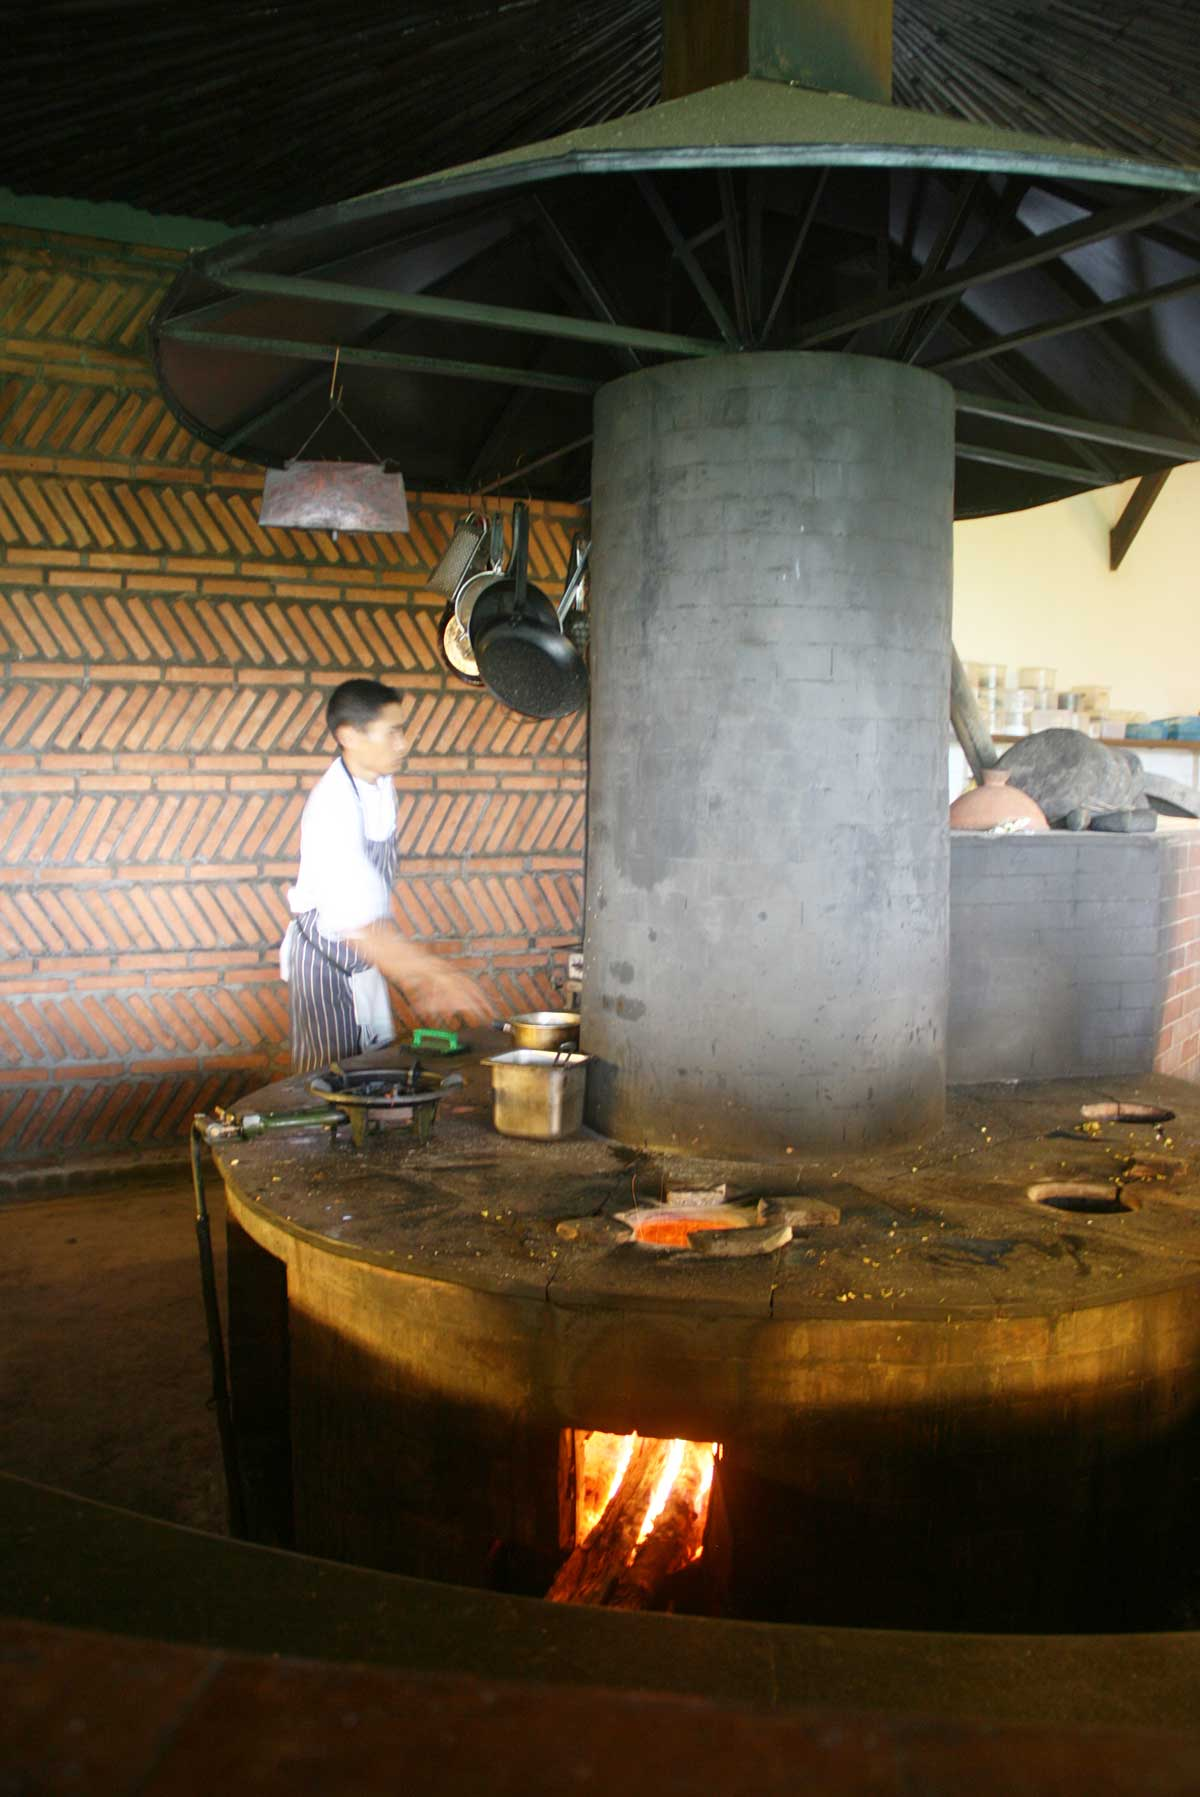 cooking on open fire in Bali